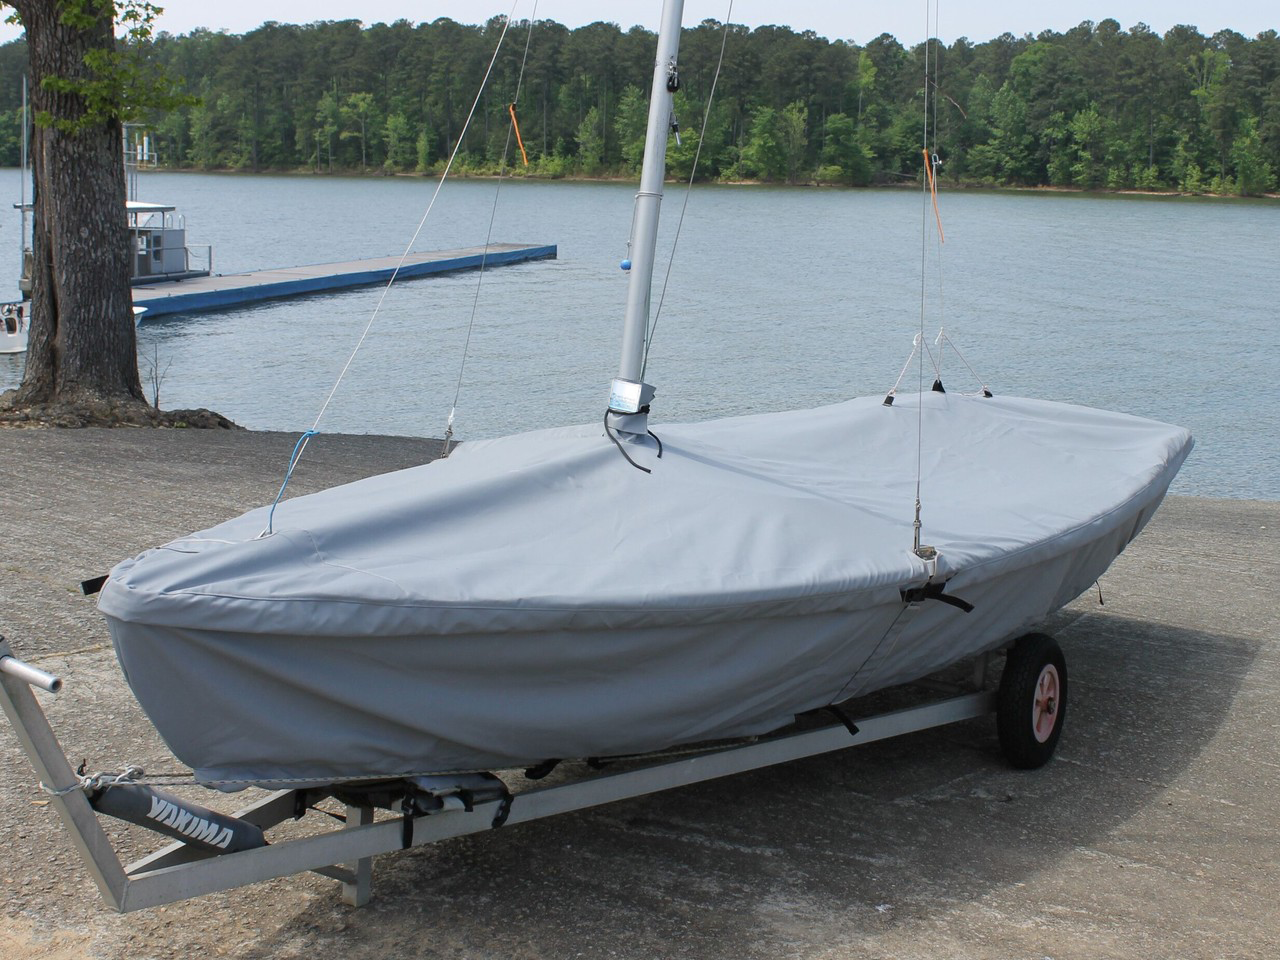 Snipe Sailboat Skirted Mast Up Flat Cover by SLO Sail and Canvas